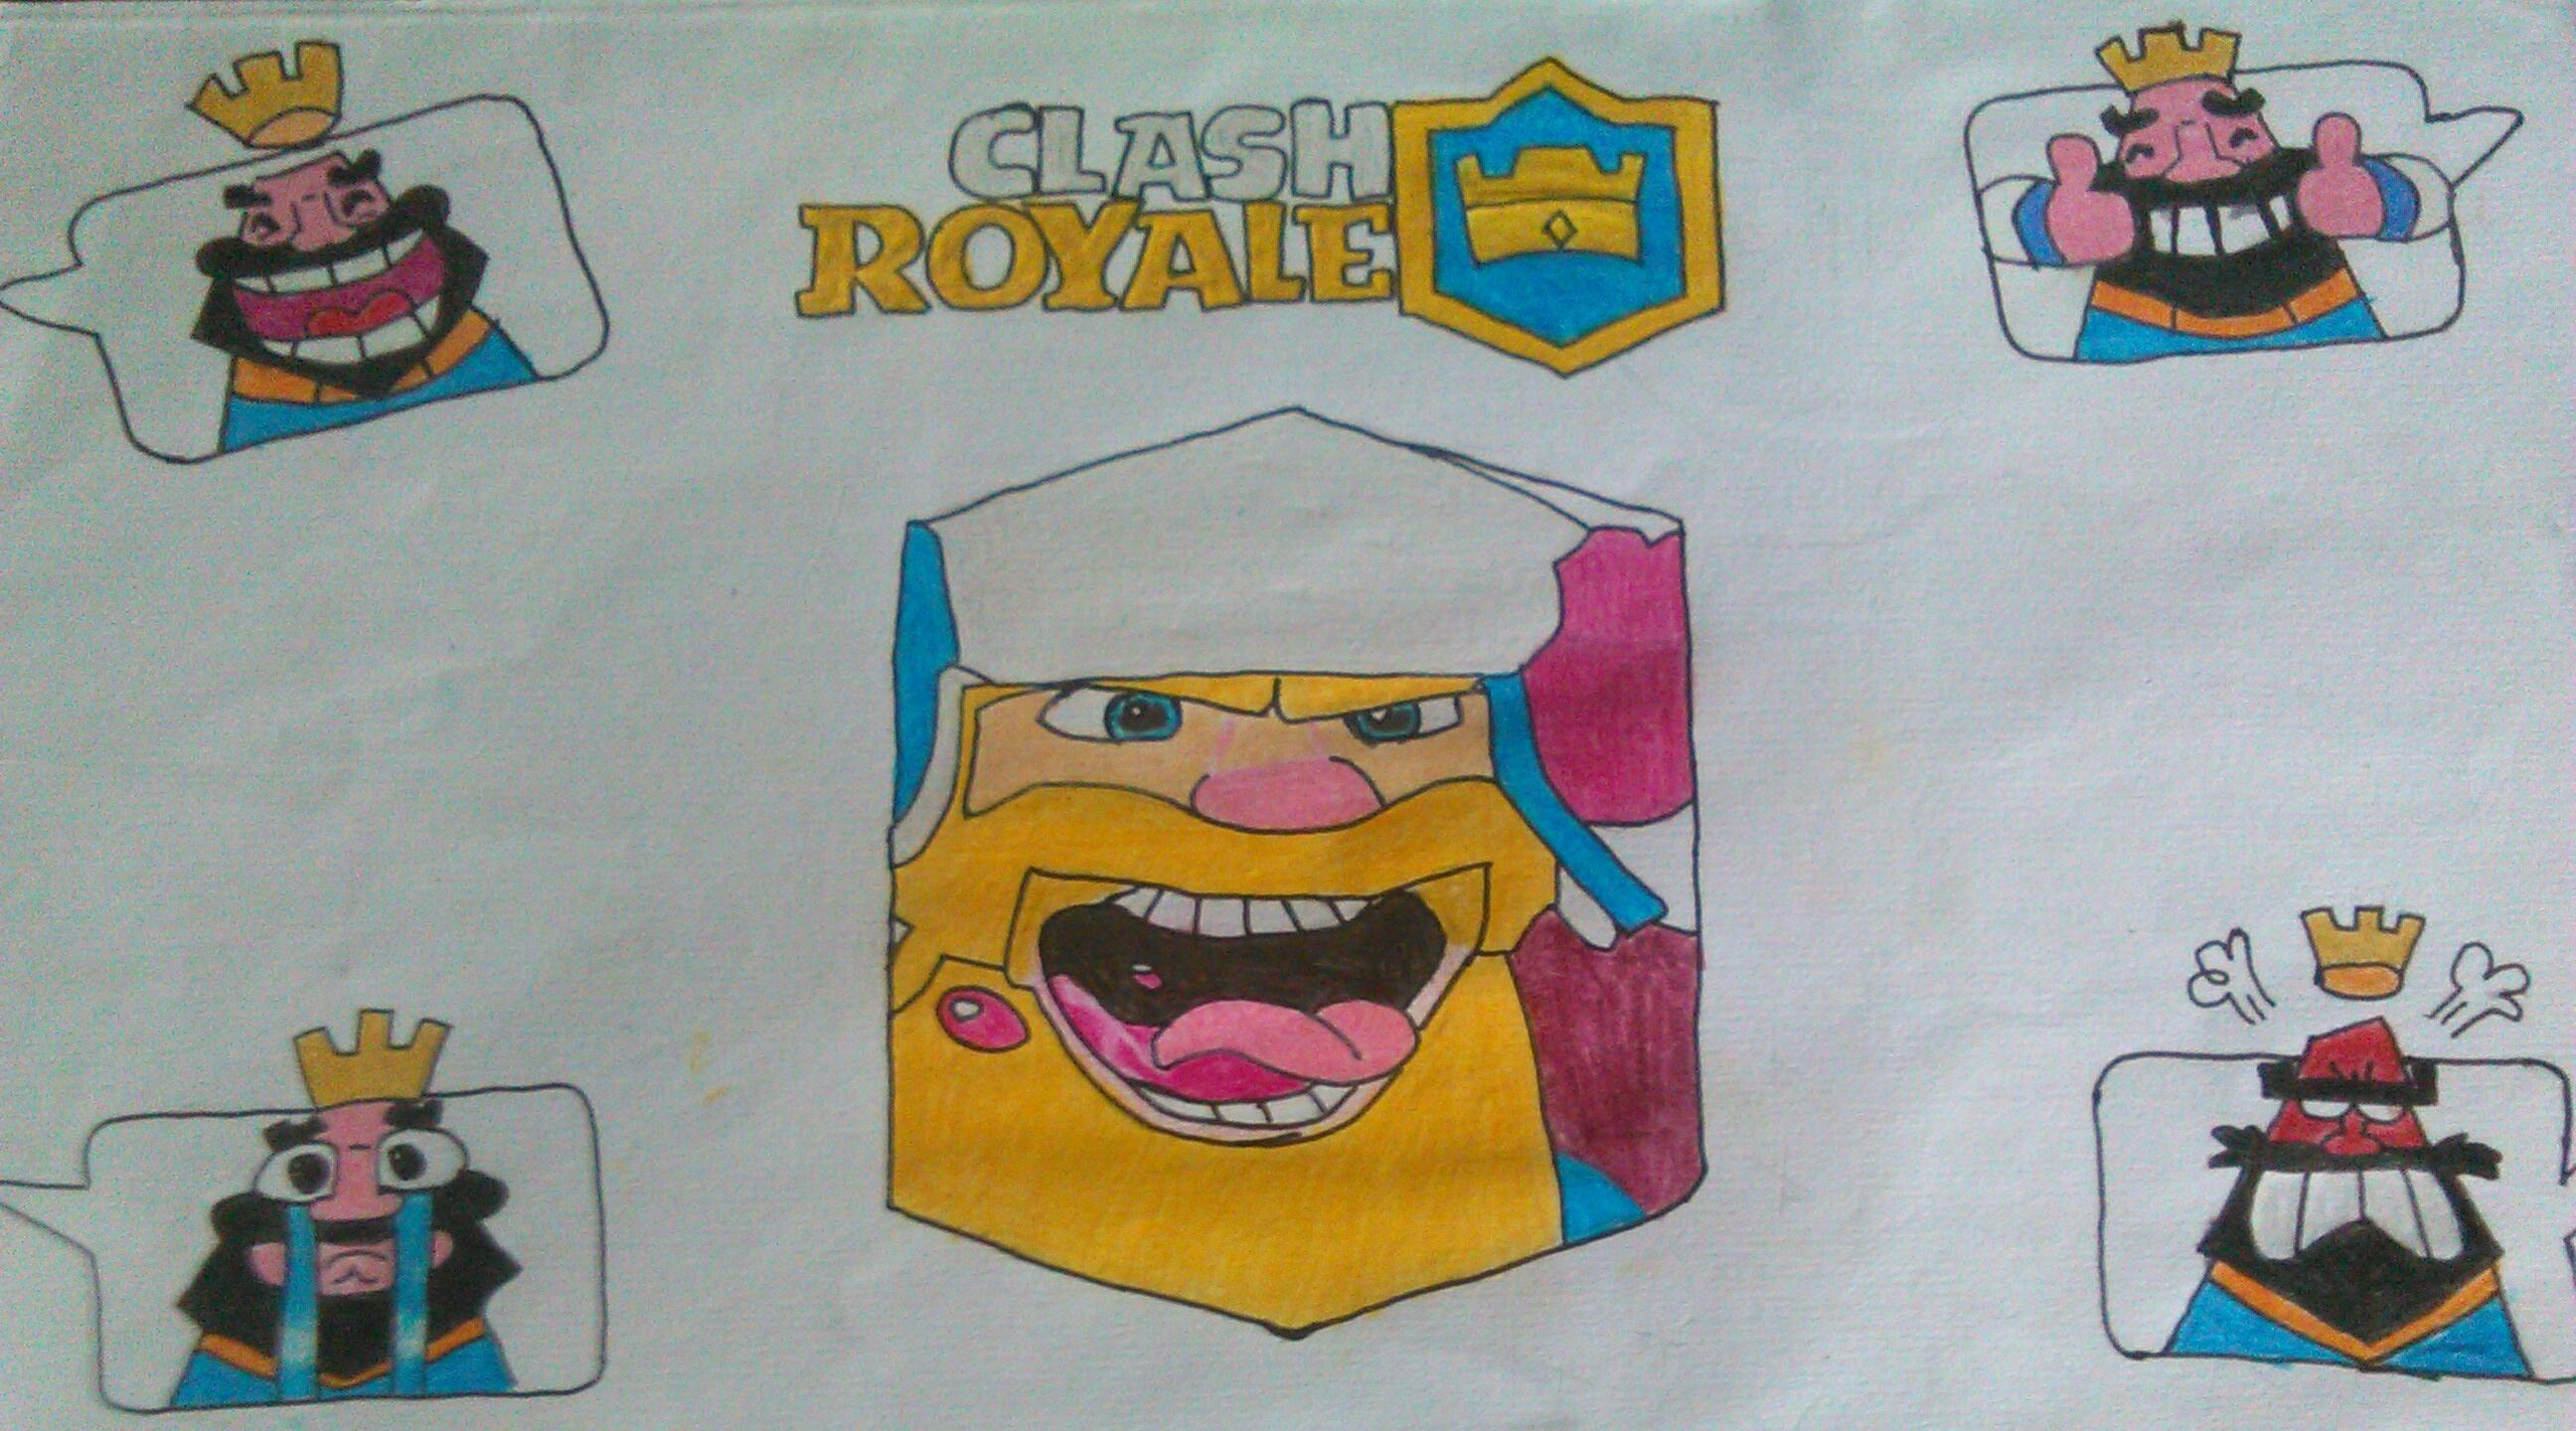 2592x1440 Art] Made A Draw With Color Pencils Of Clash Royale. I Hope You